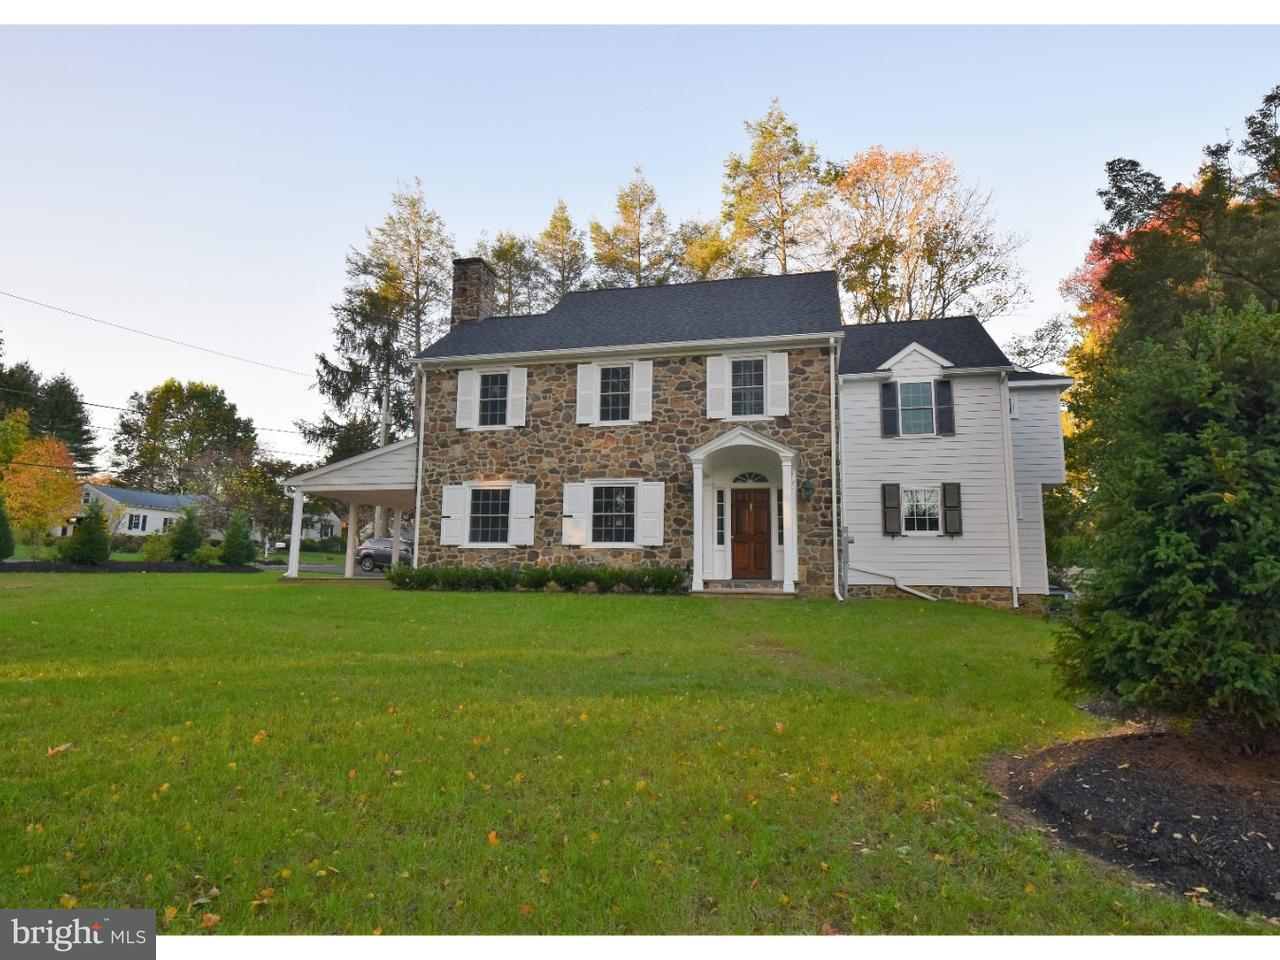 Single Family Home for Sale at 336 N VALLEY FORGE Road Devon, Pennsylvania 19333 United States